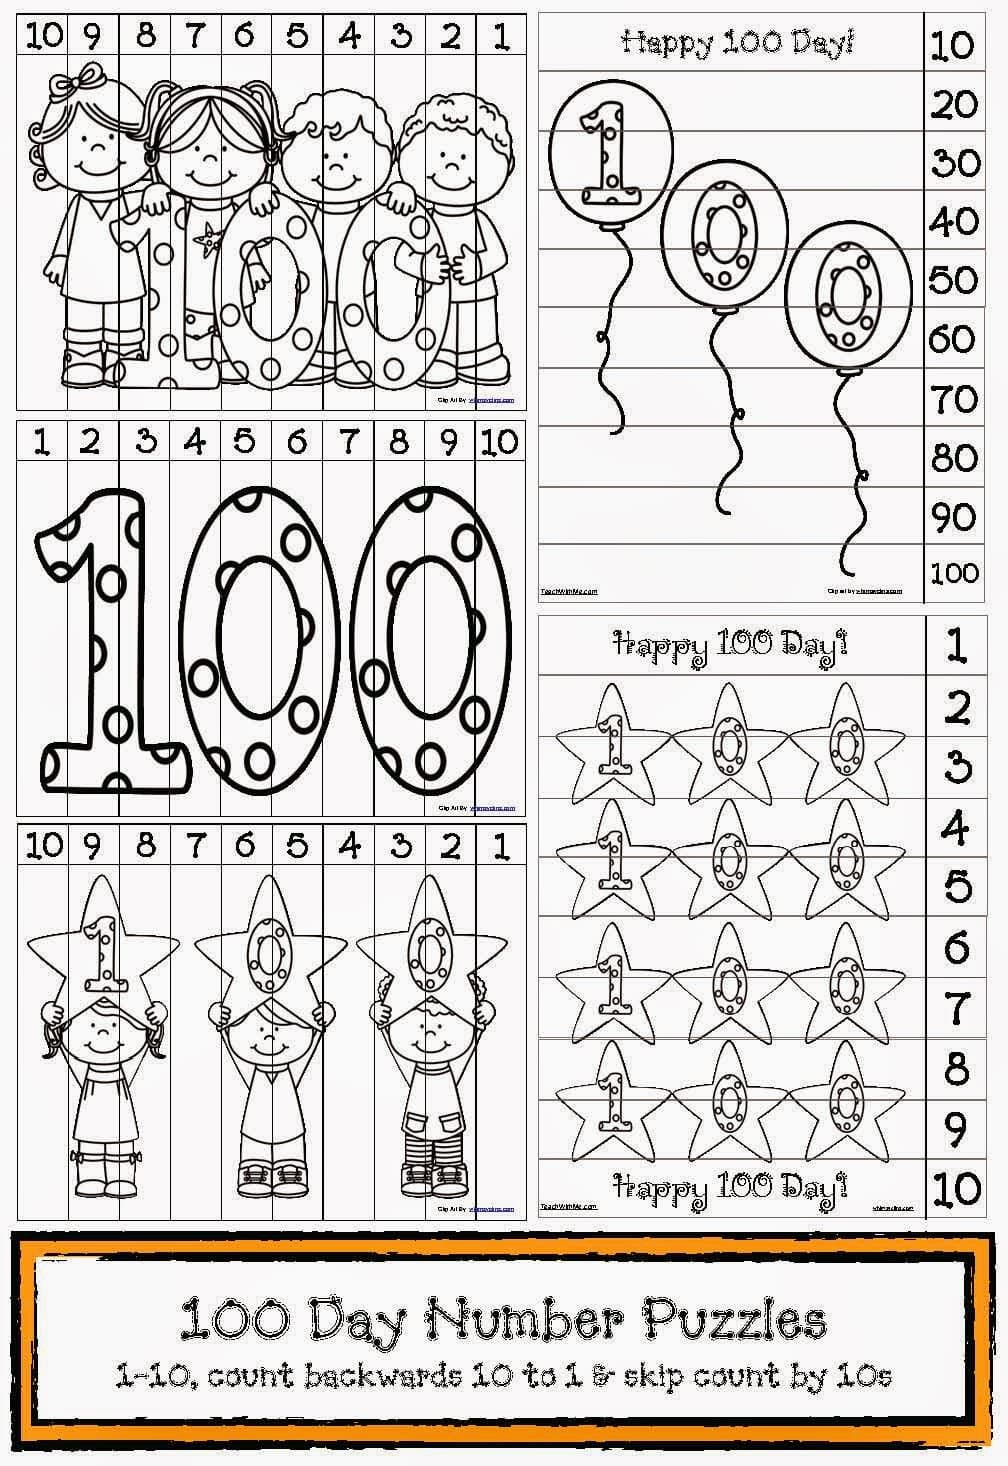 100th Day of School Activities including bookmarks, t-shirt tips, lesson plan ideas, and more!  #100thday #kindergarten